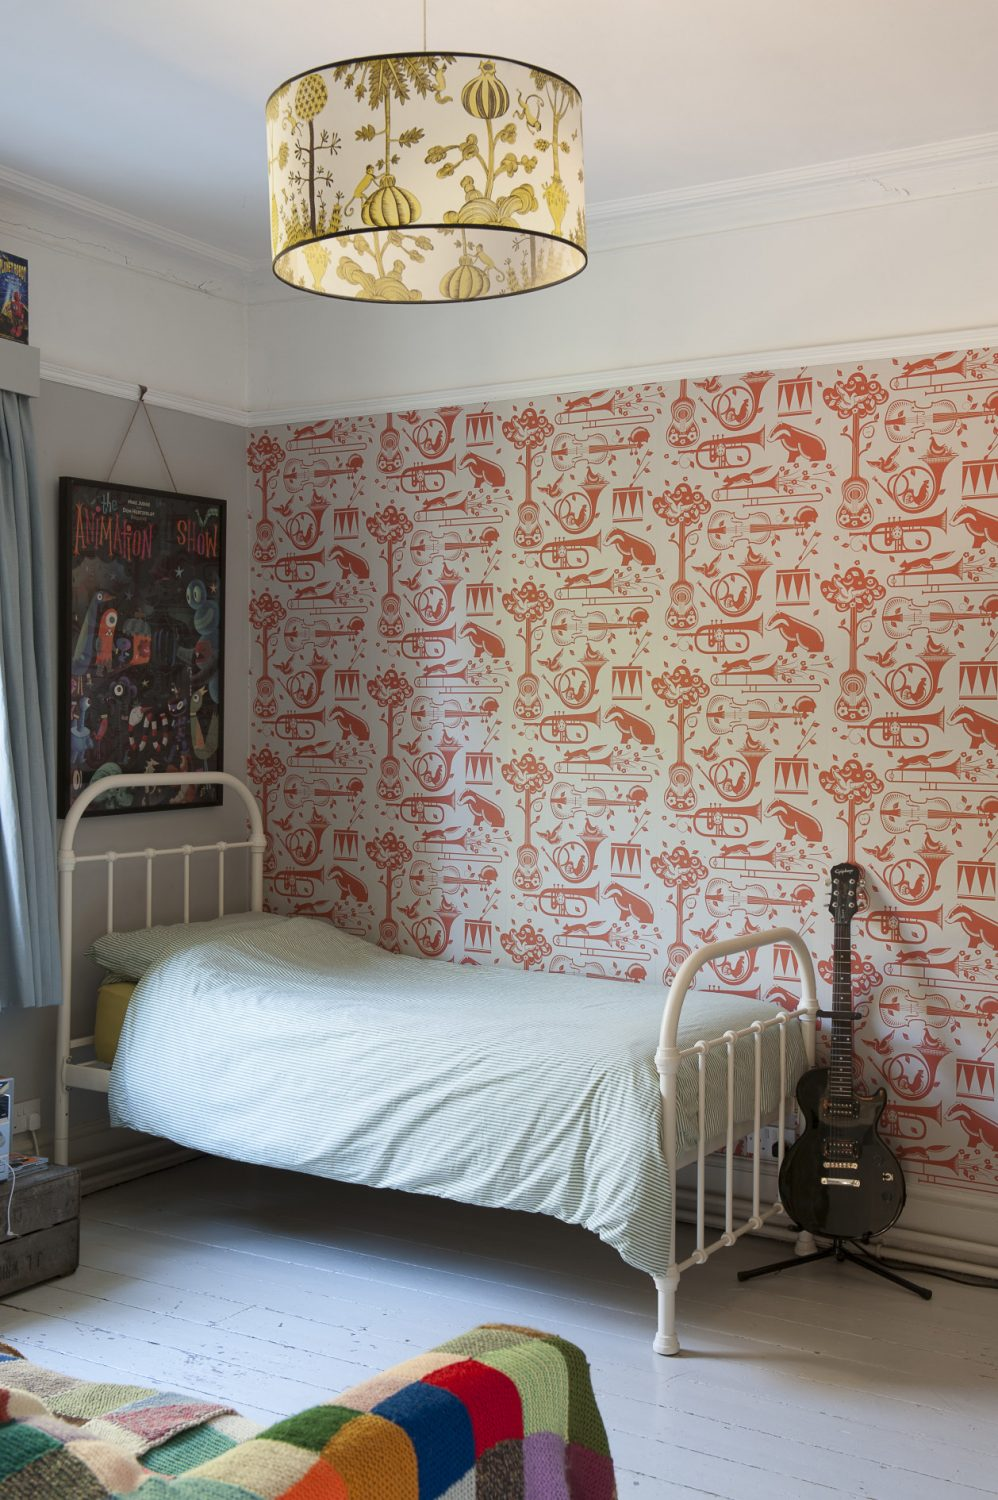 the Mini Moderns wallpaper that features an eccentric mix of French horns, drums, cockerels and badgers